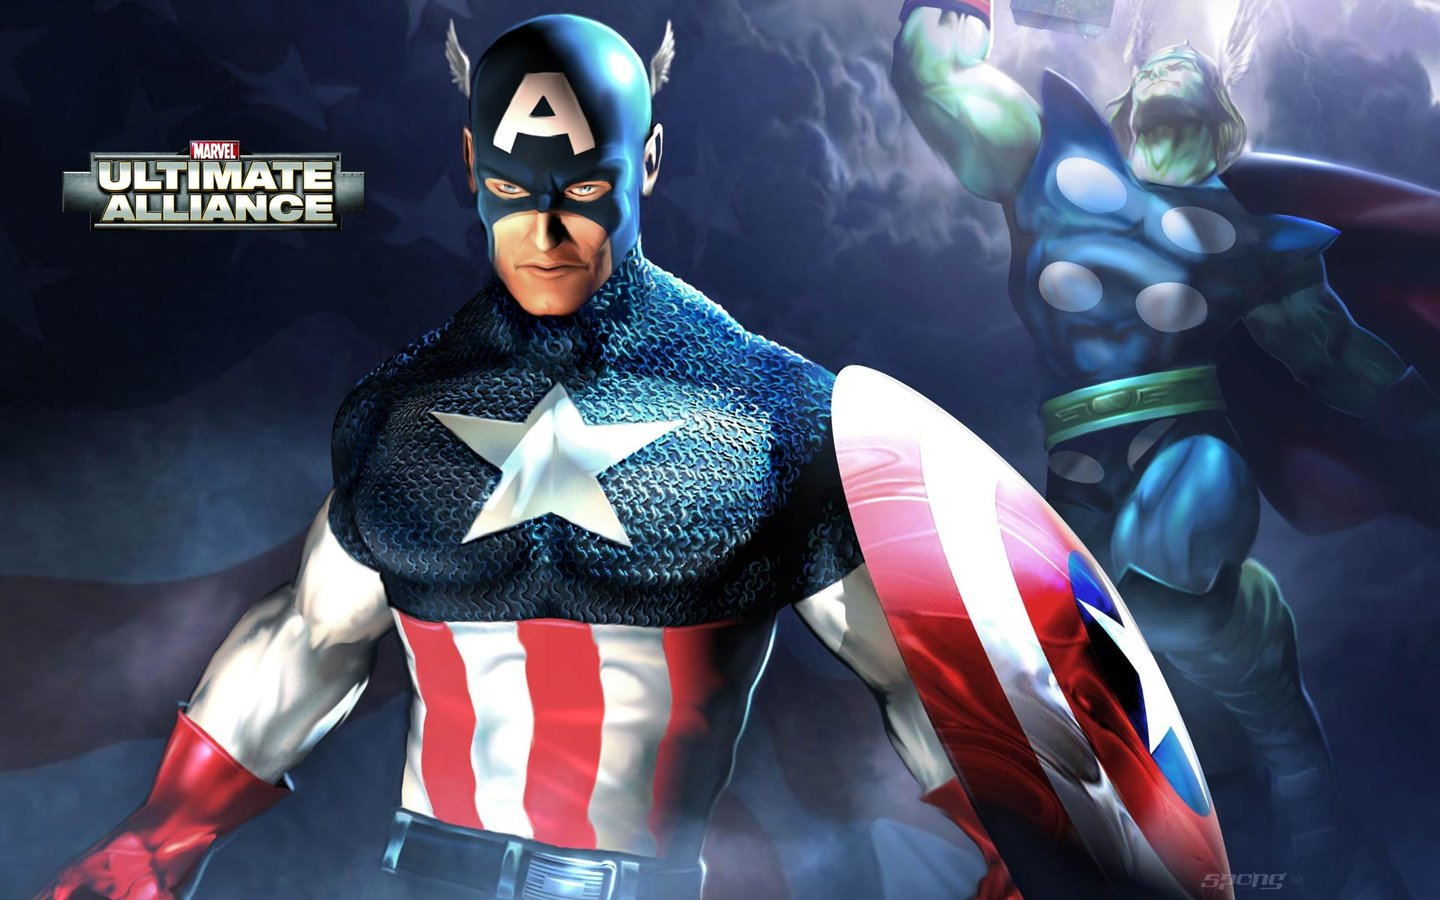 Wallpapers: Marvel: Ultimate Alliance - Xbox (1 of 2)